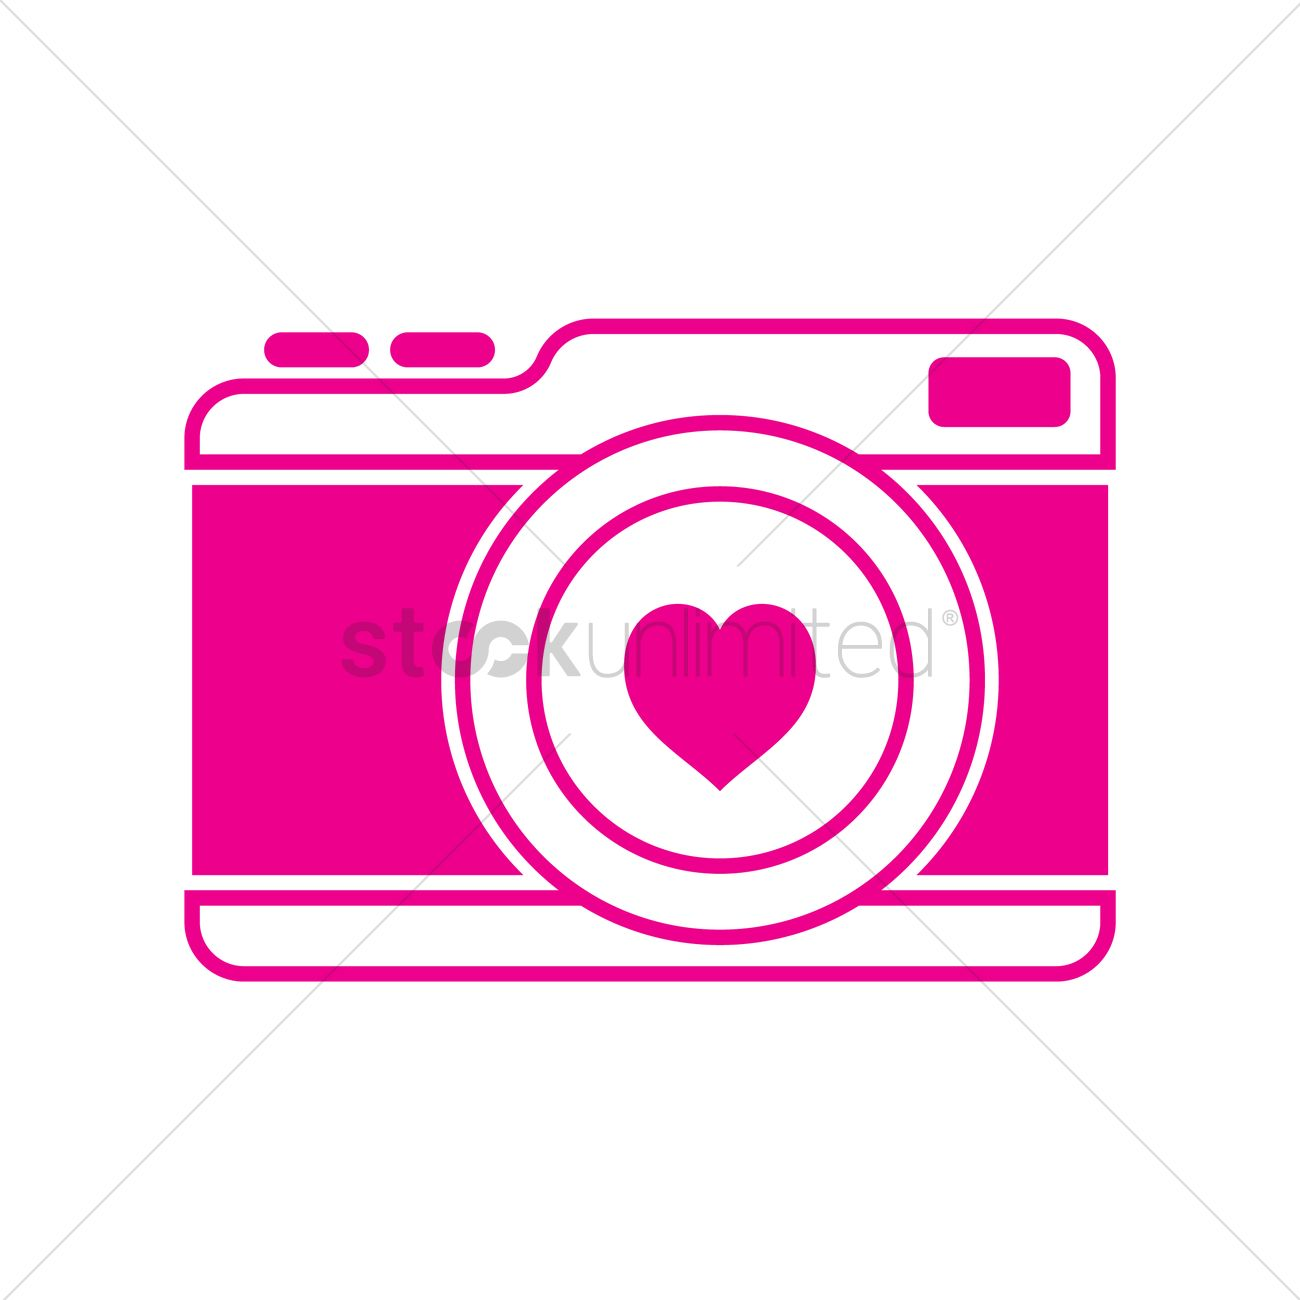 Camera With Heart Vector Image 1492955 Stockunlimited